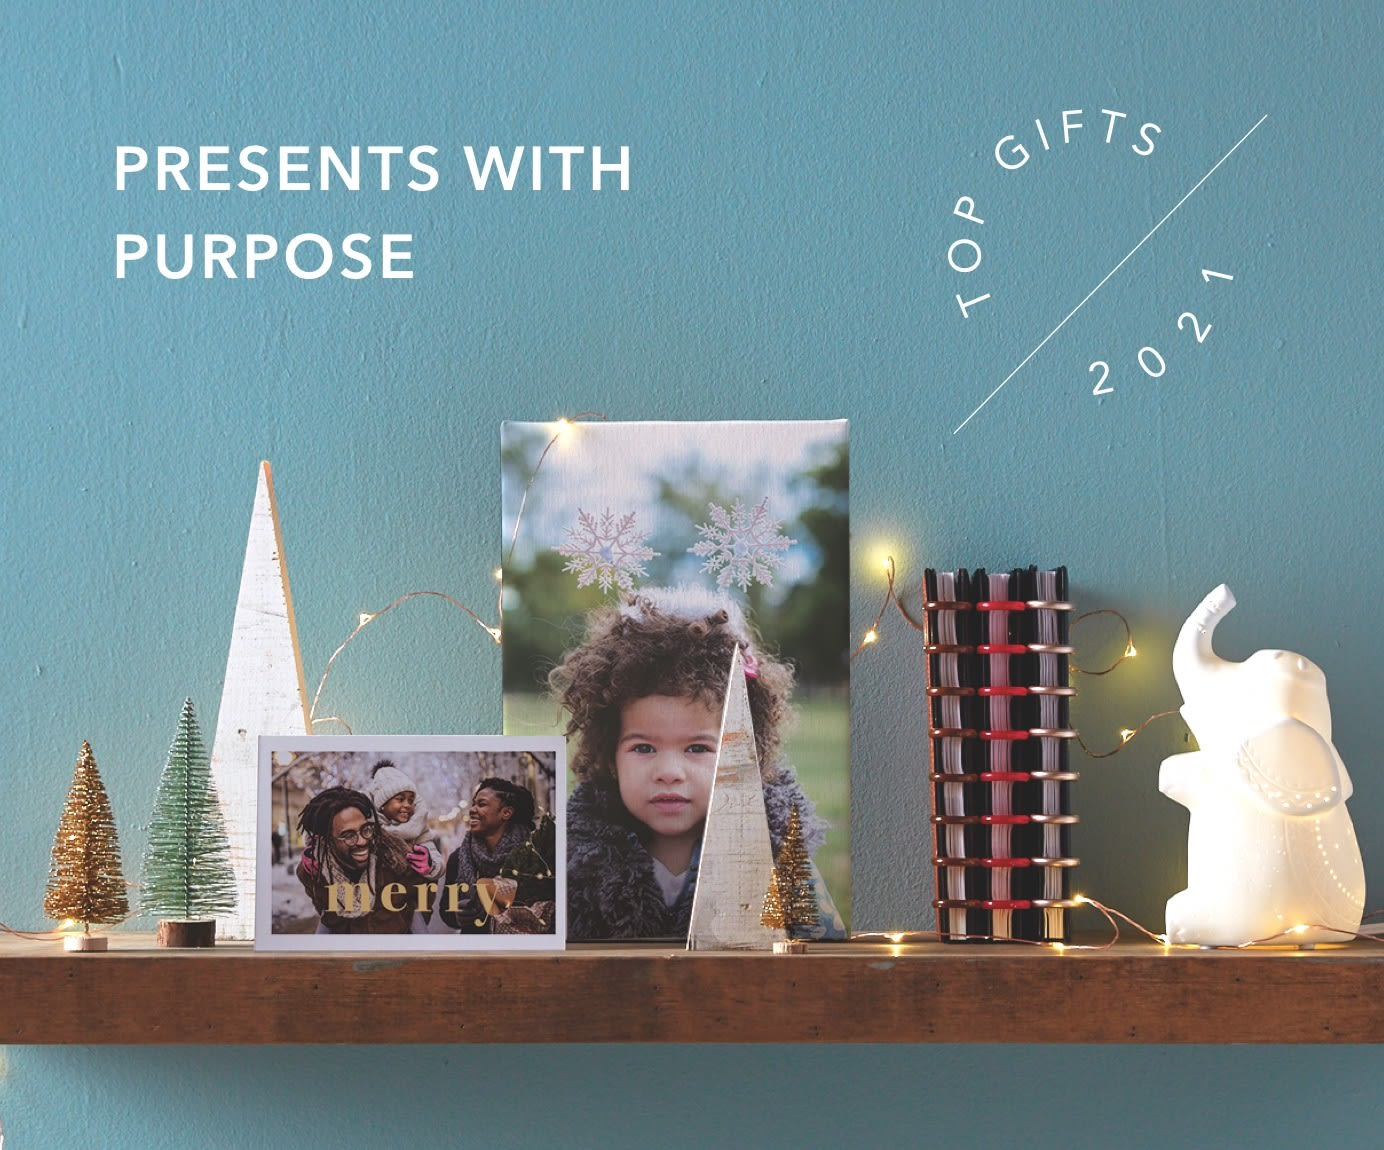 Presents with Purpose